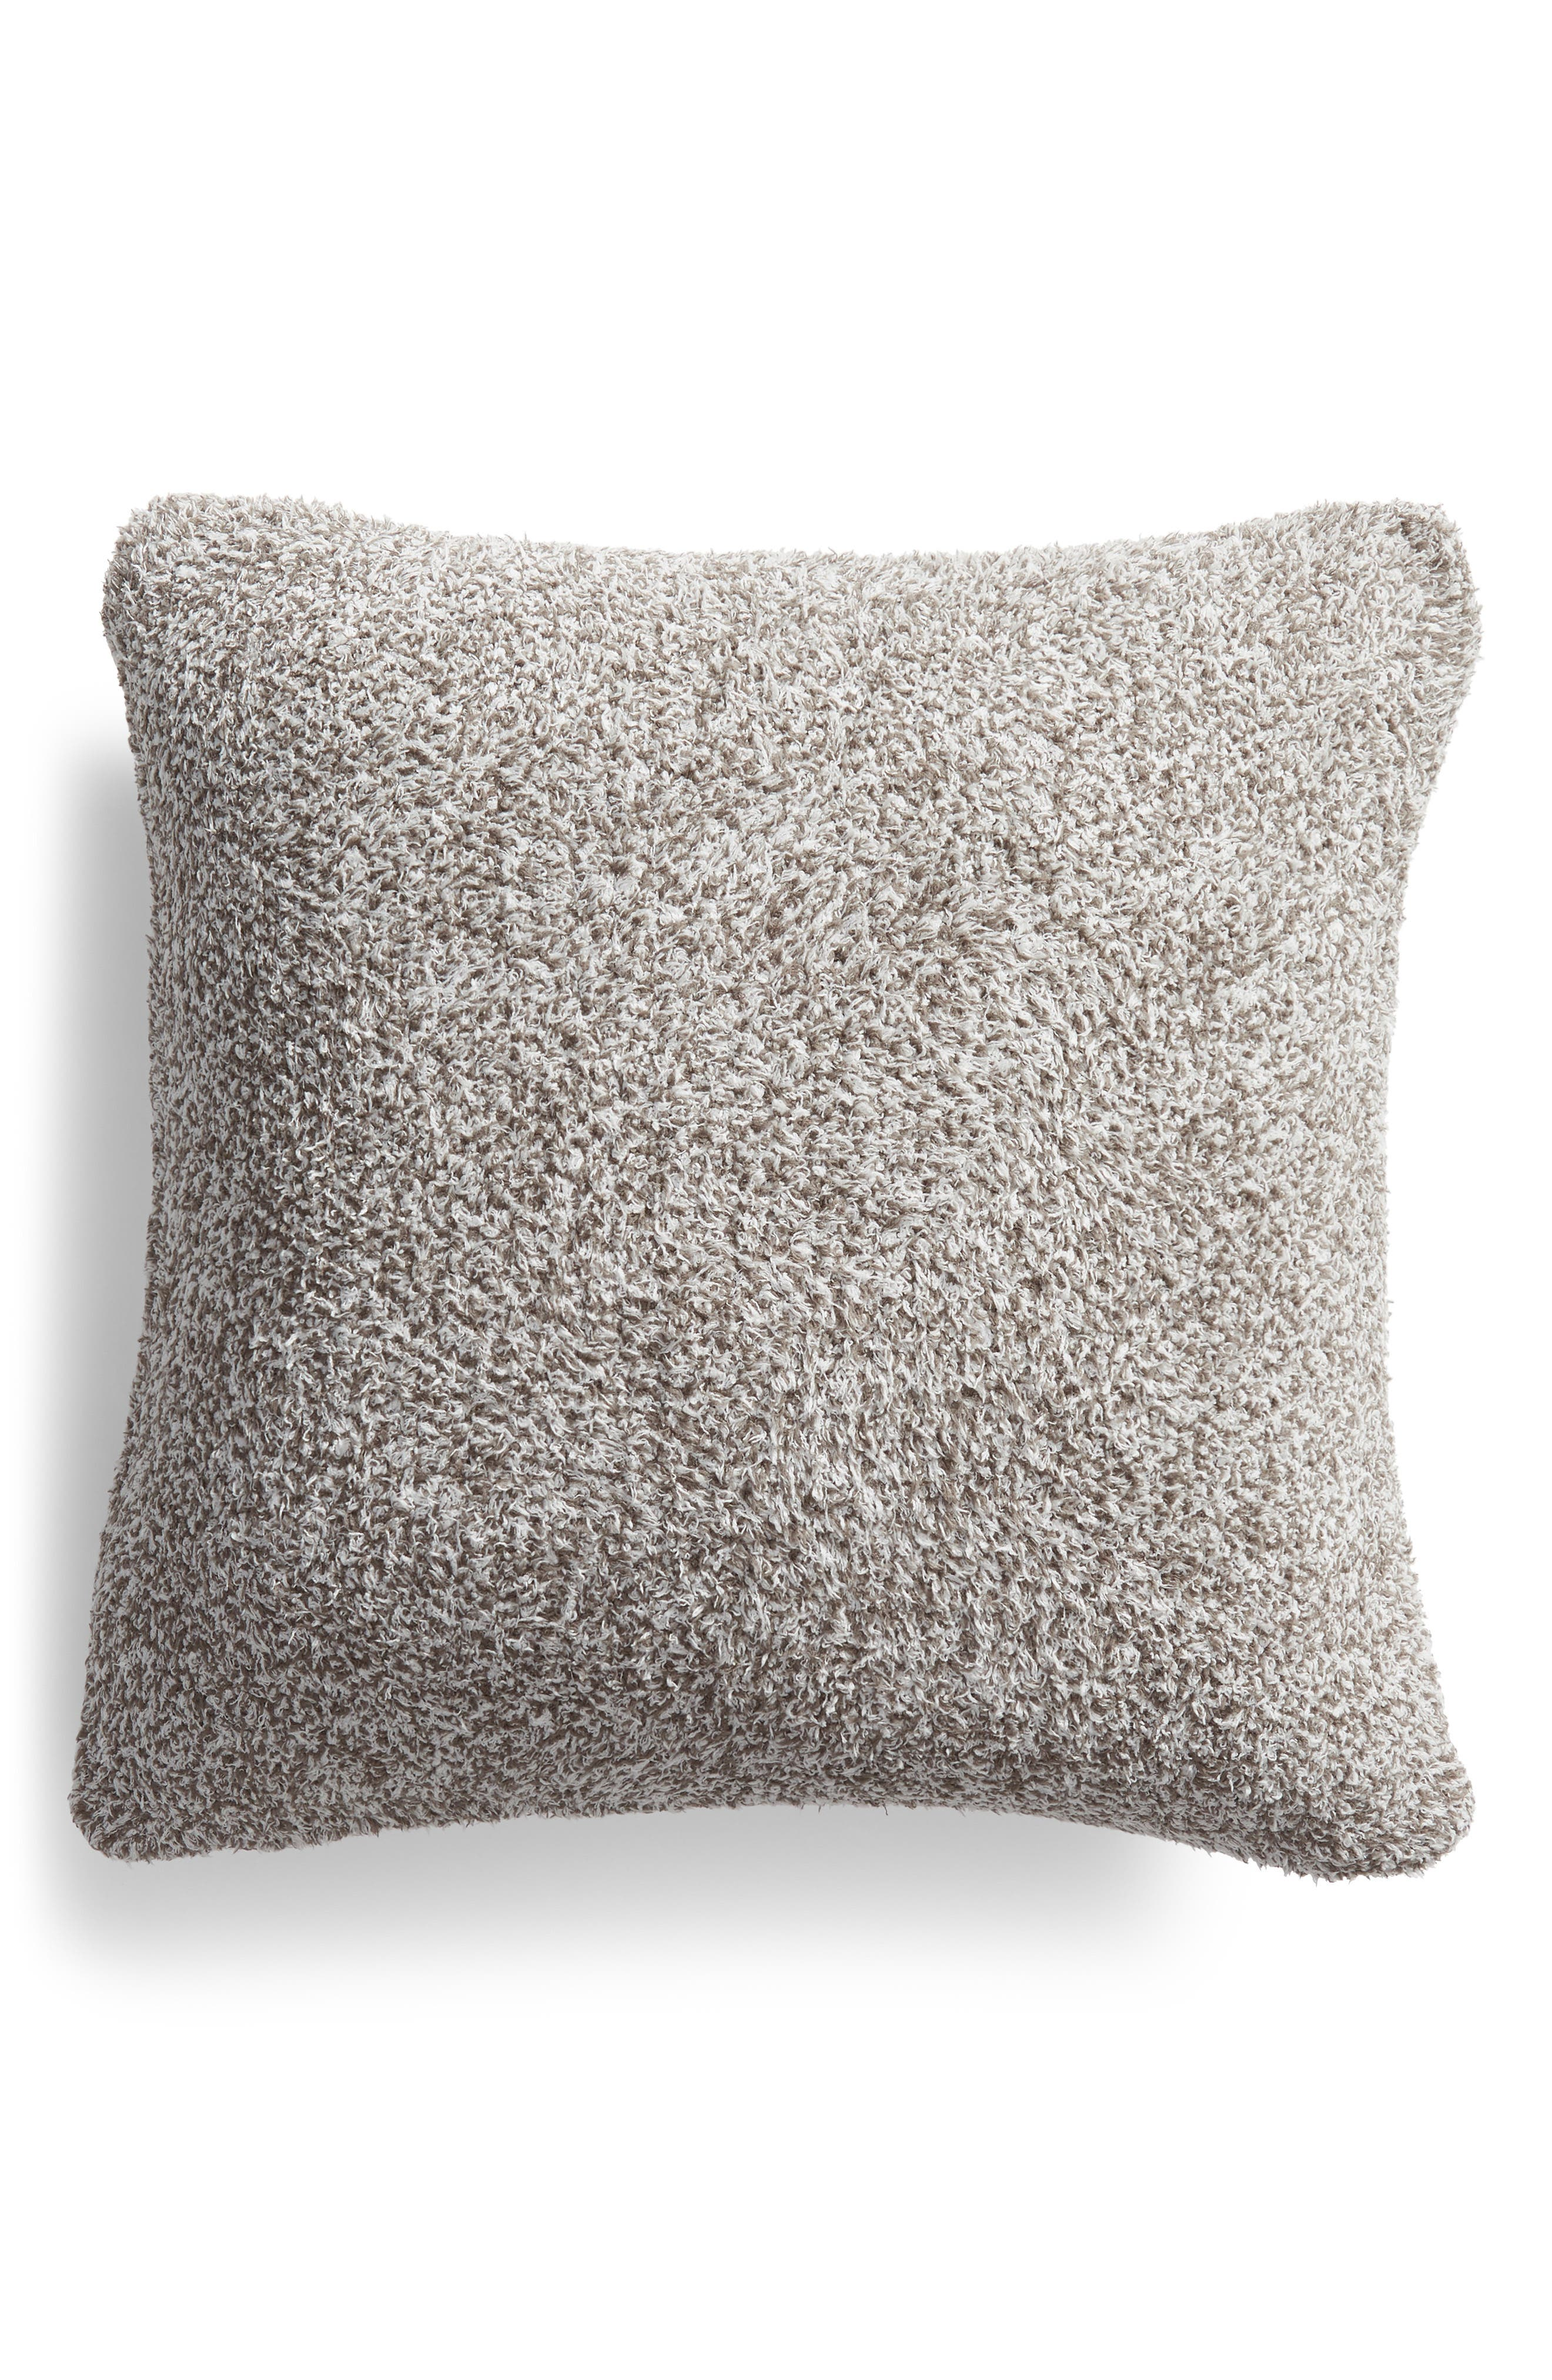 Cozychic<sup>®</sup> Heathered Accent Pillow,                         Main,                         color, CHARCOAL/ WHITE